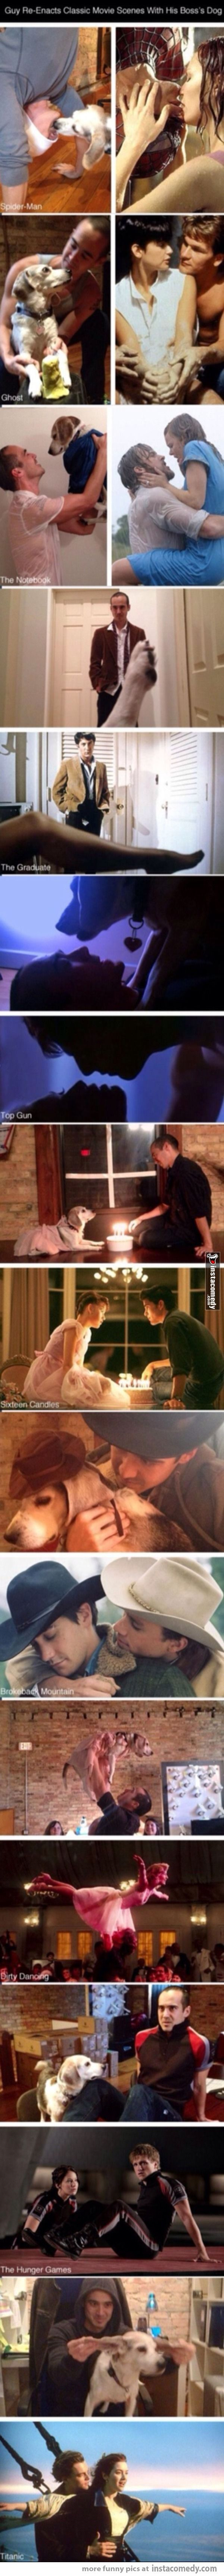 Guy remakes classic movie scenes with boss' dog